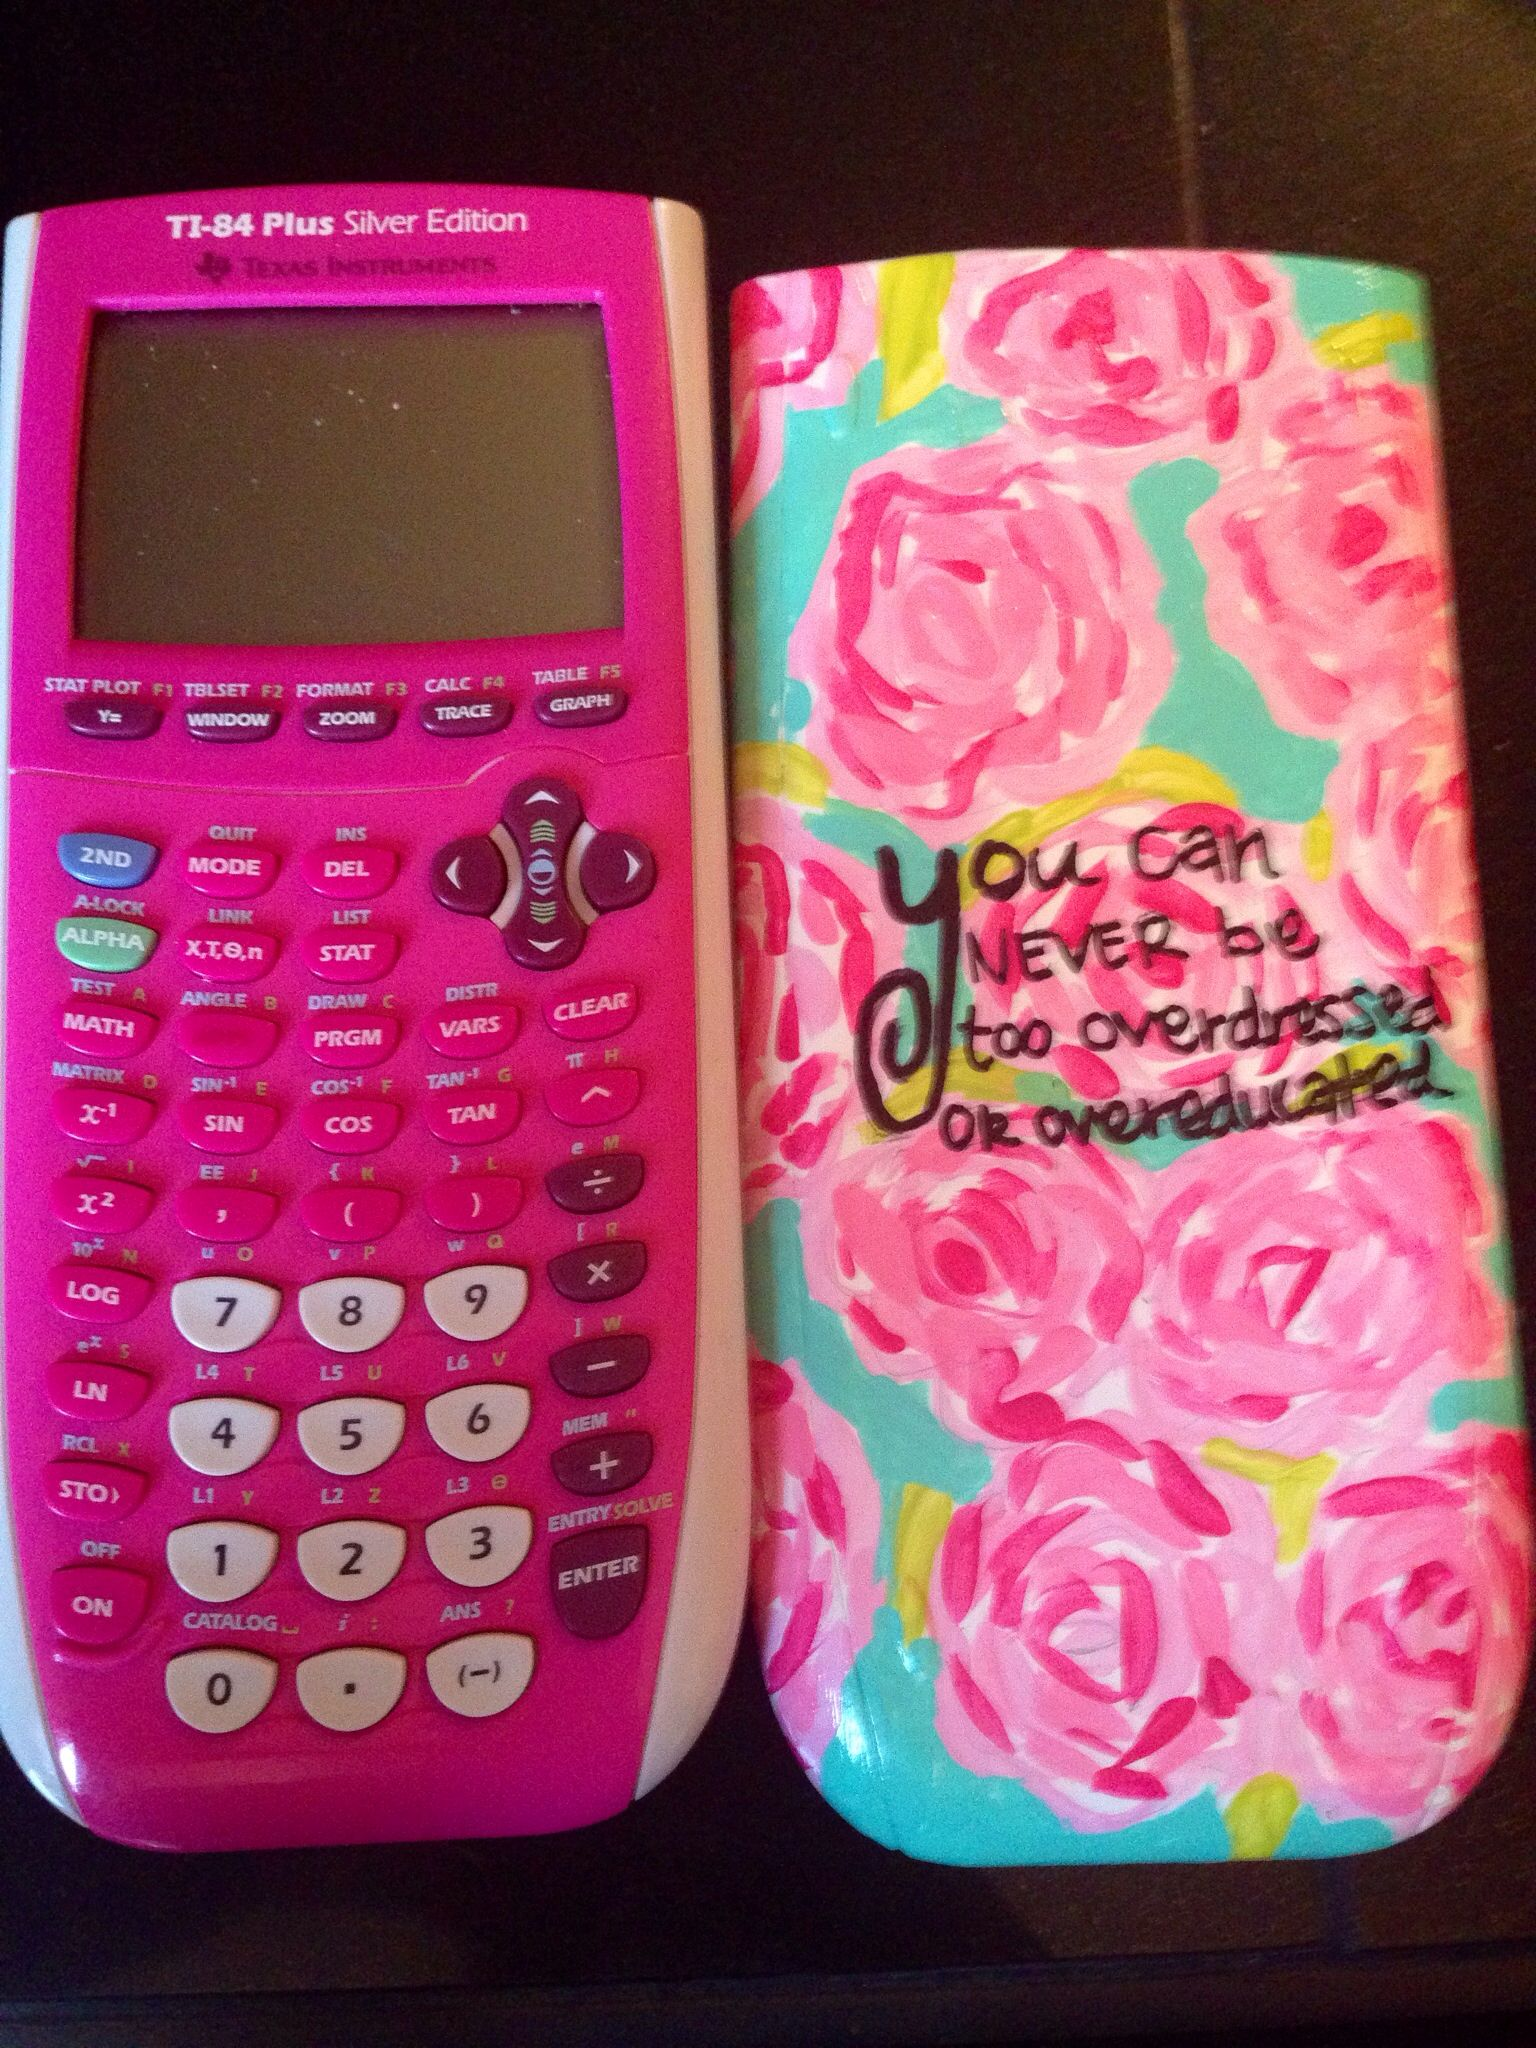 Diy glitter notebook cover - Diy Lilly Calculator Cover